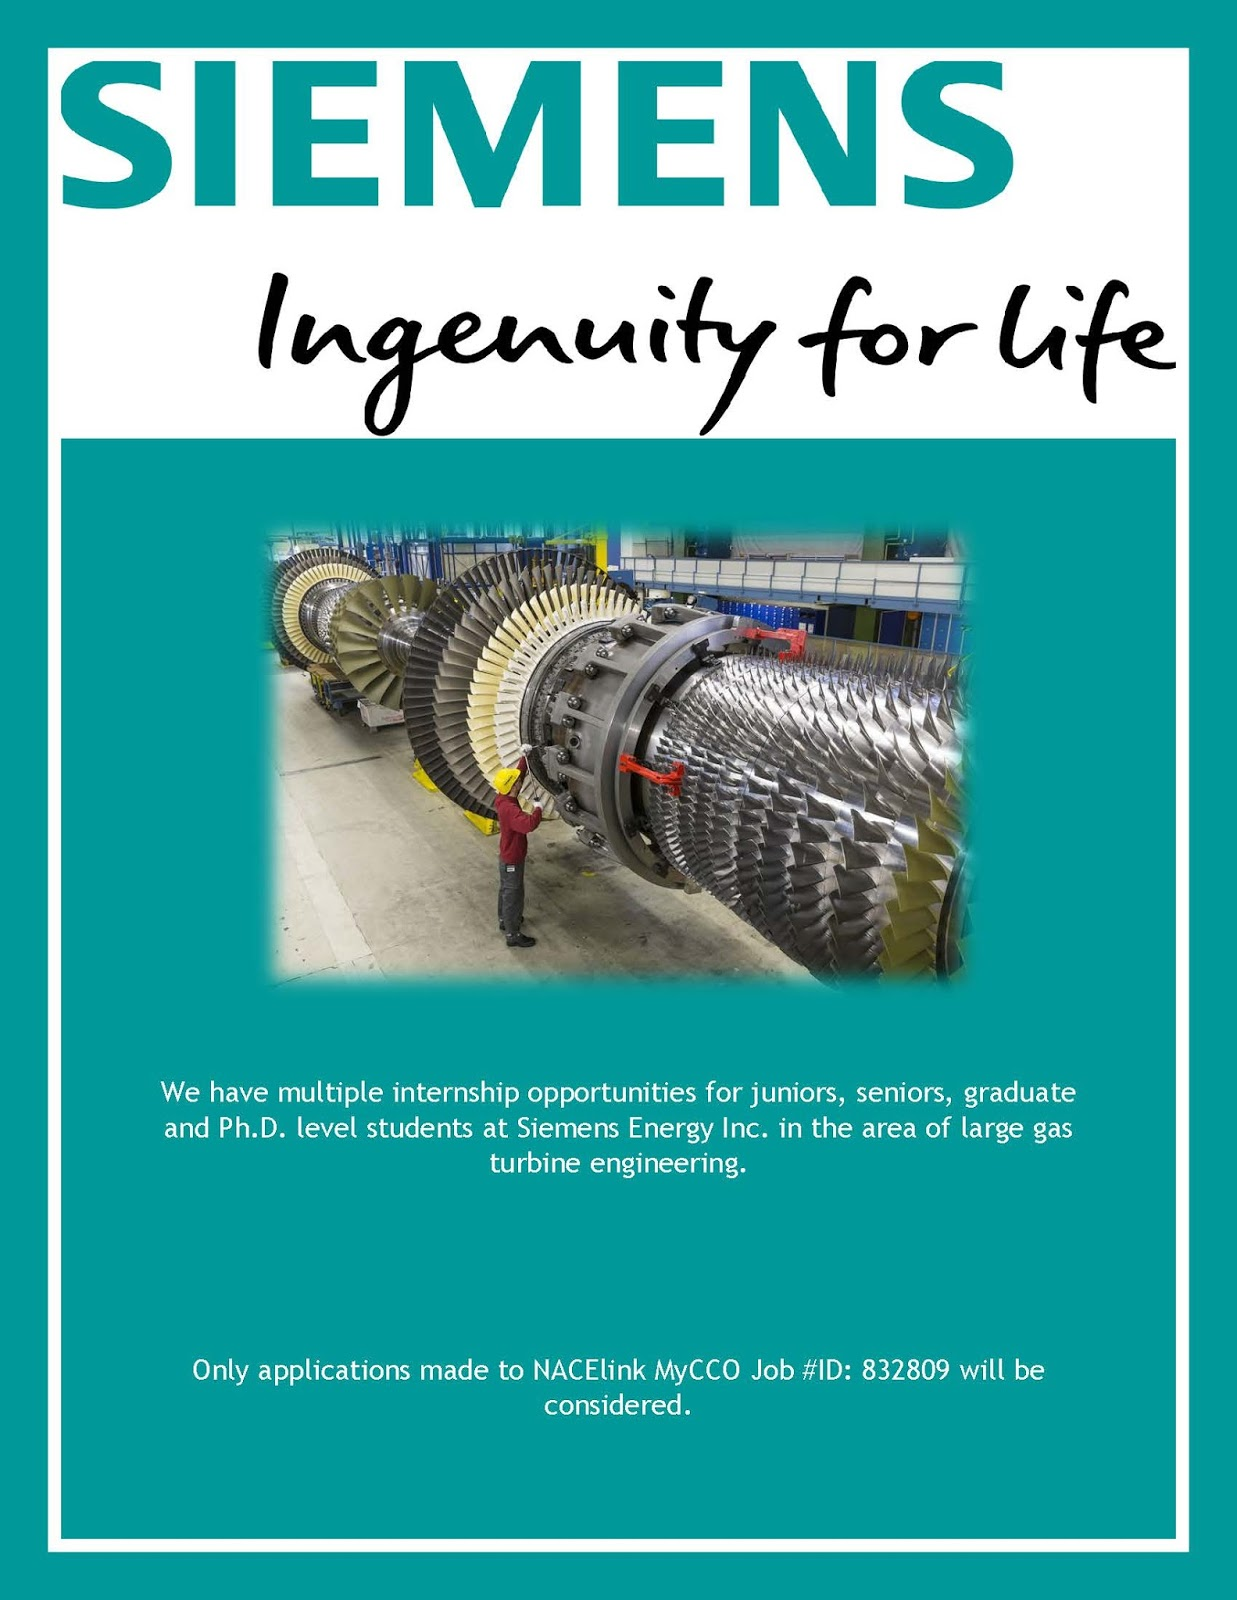 Siemens Gas Turbine Engineering Internship